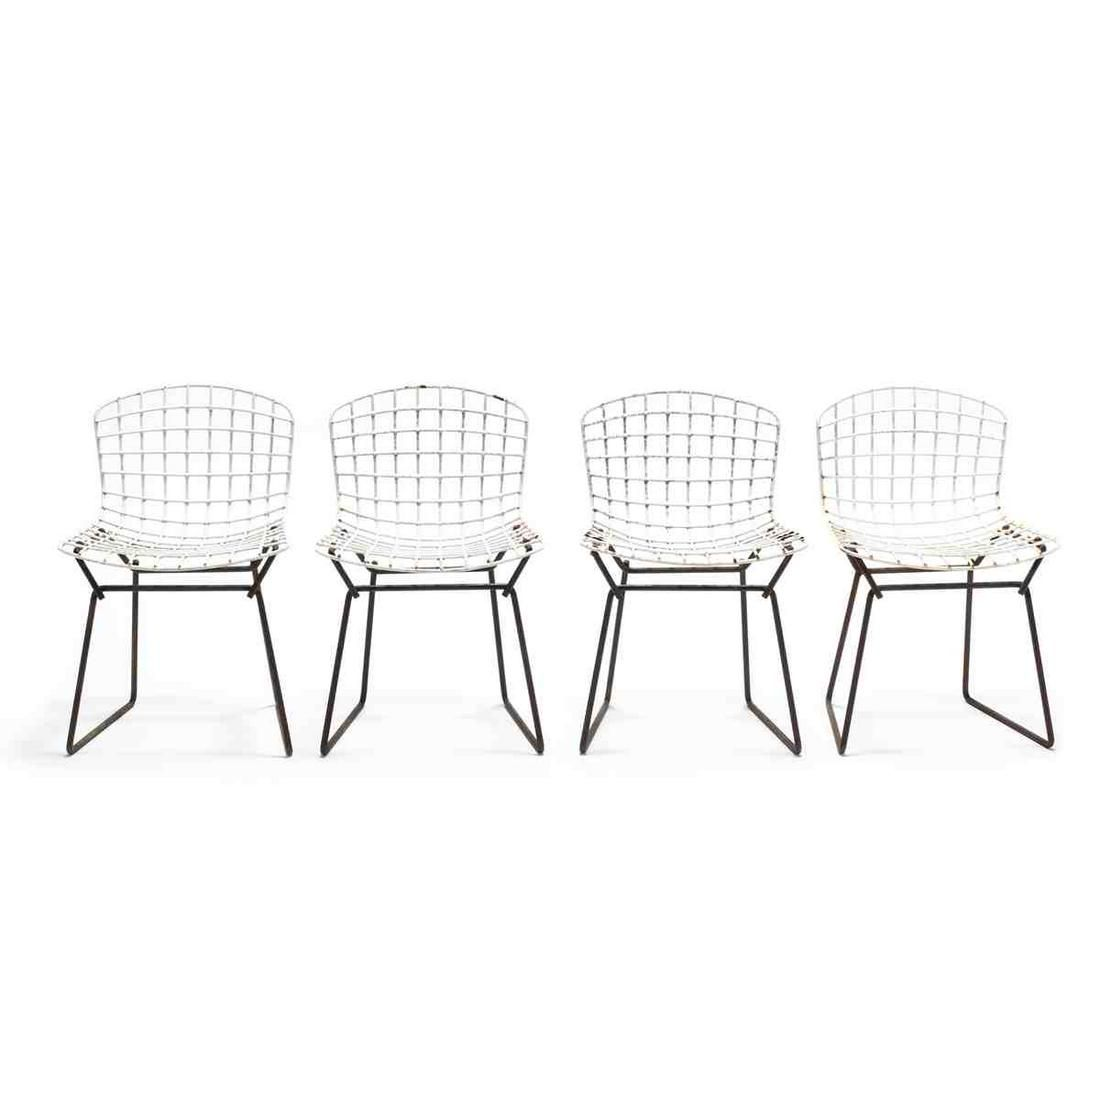 Harry Bertoia, Set of Four Child's Wire Chairs